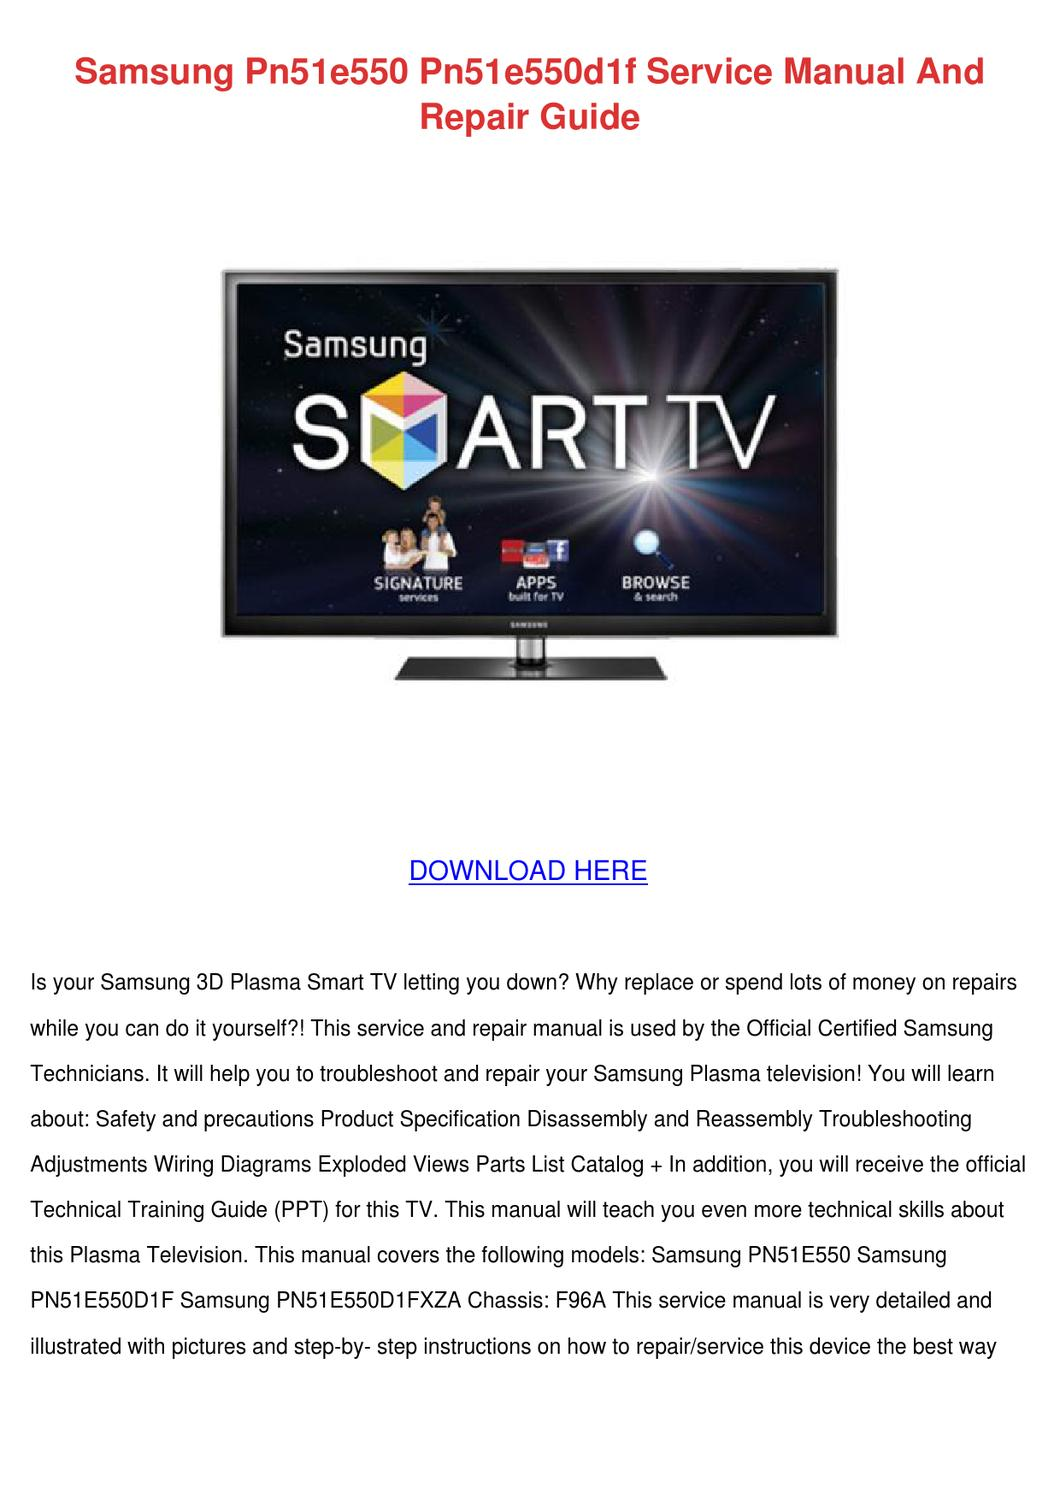 Samsung Pn51e550 Pn51e550d1f Service Manual A By Emiledemers Issuu Wiring Diagram For Smart Tv